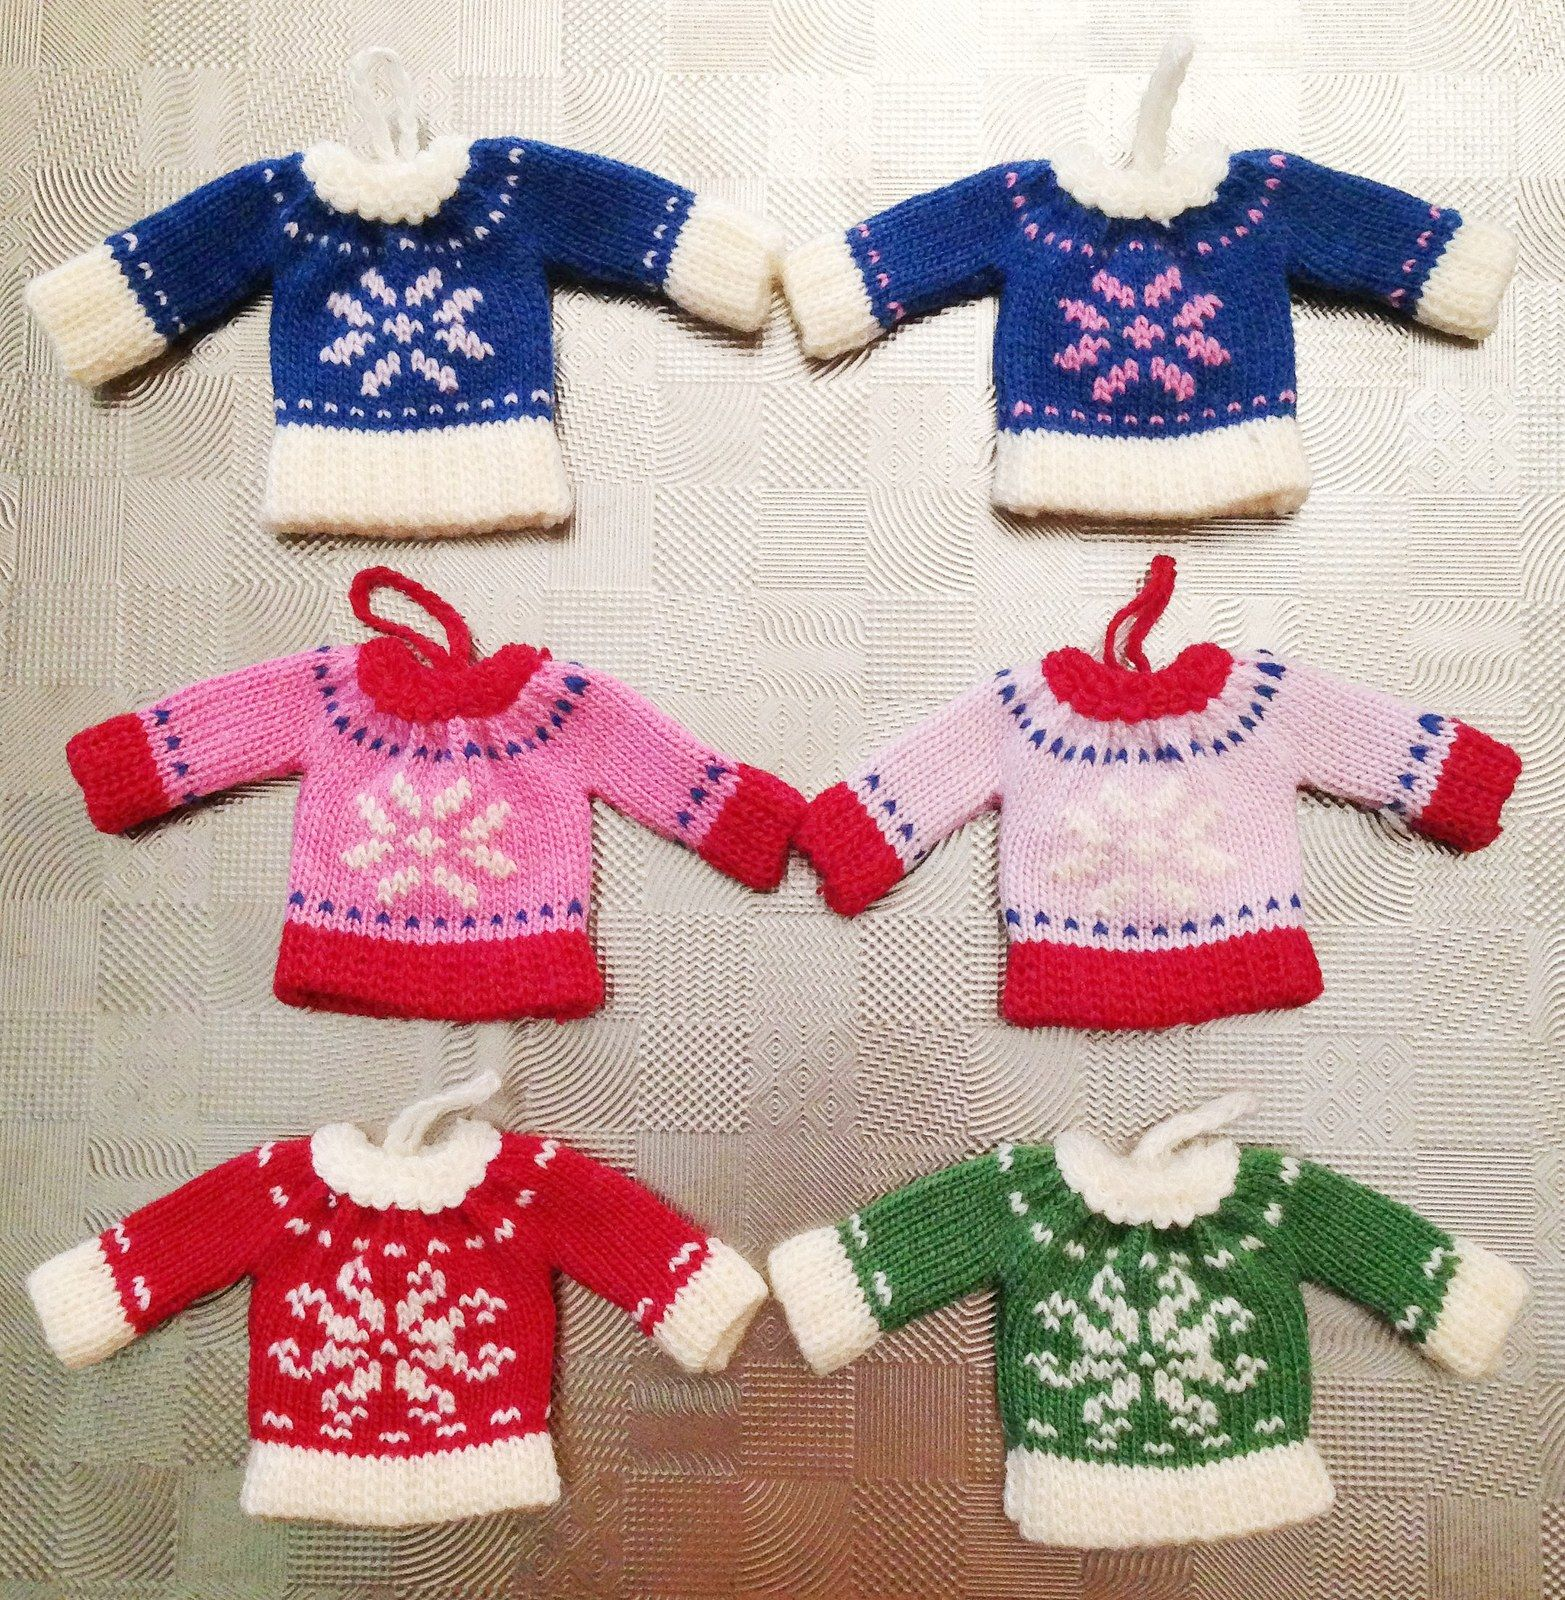 Set of 6 mini sweater ornaments at Christmas